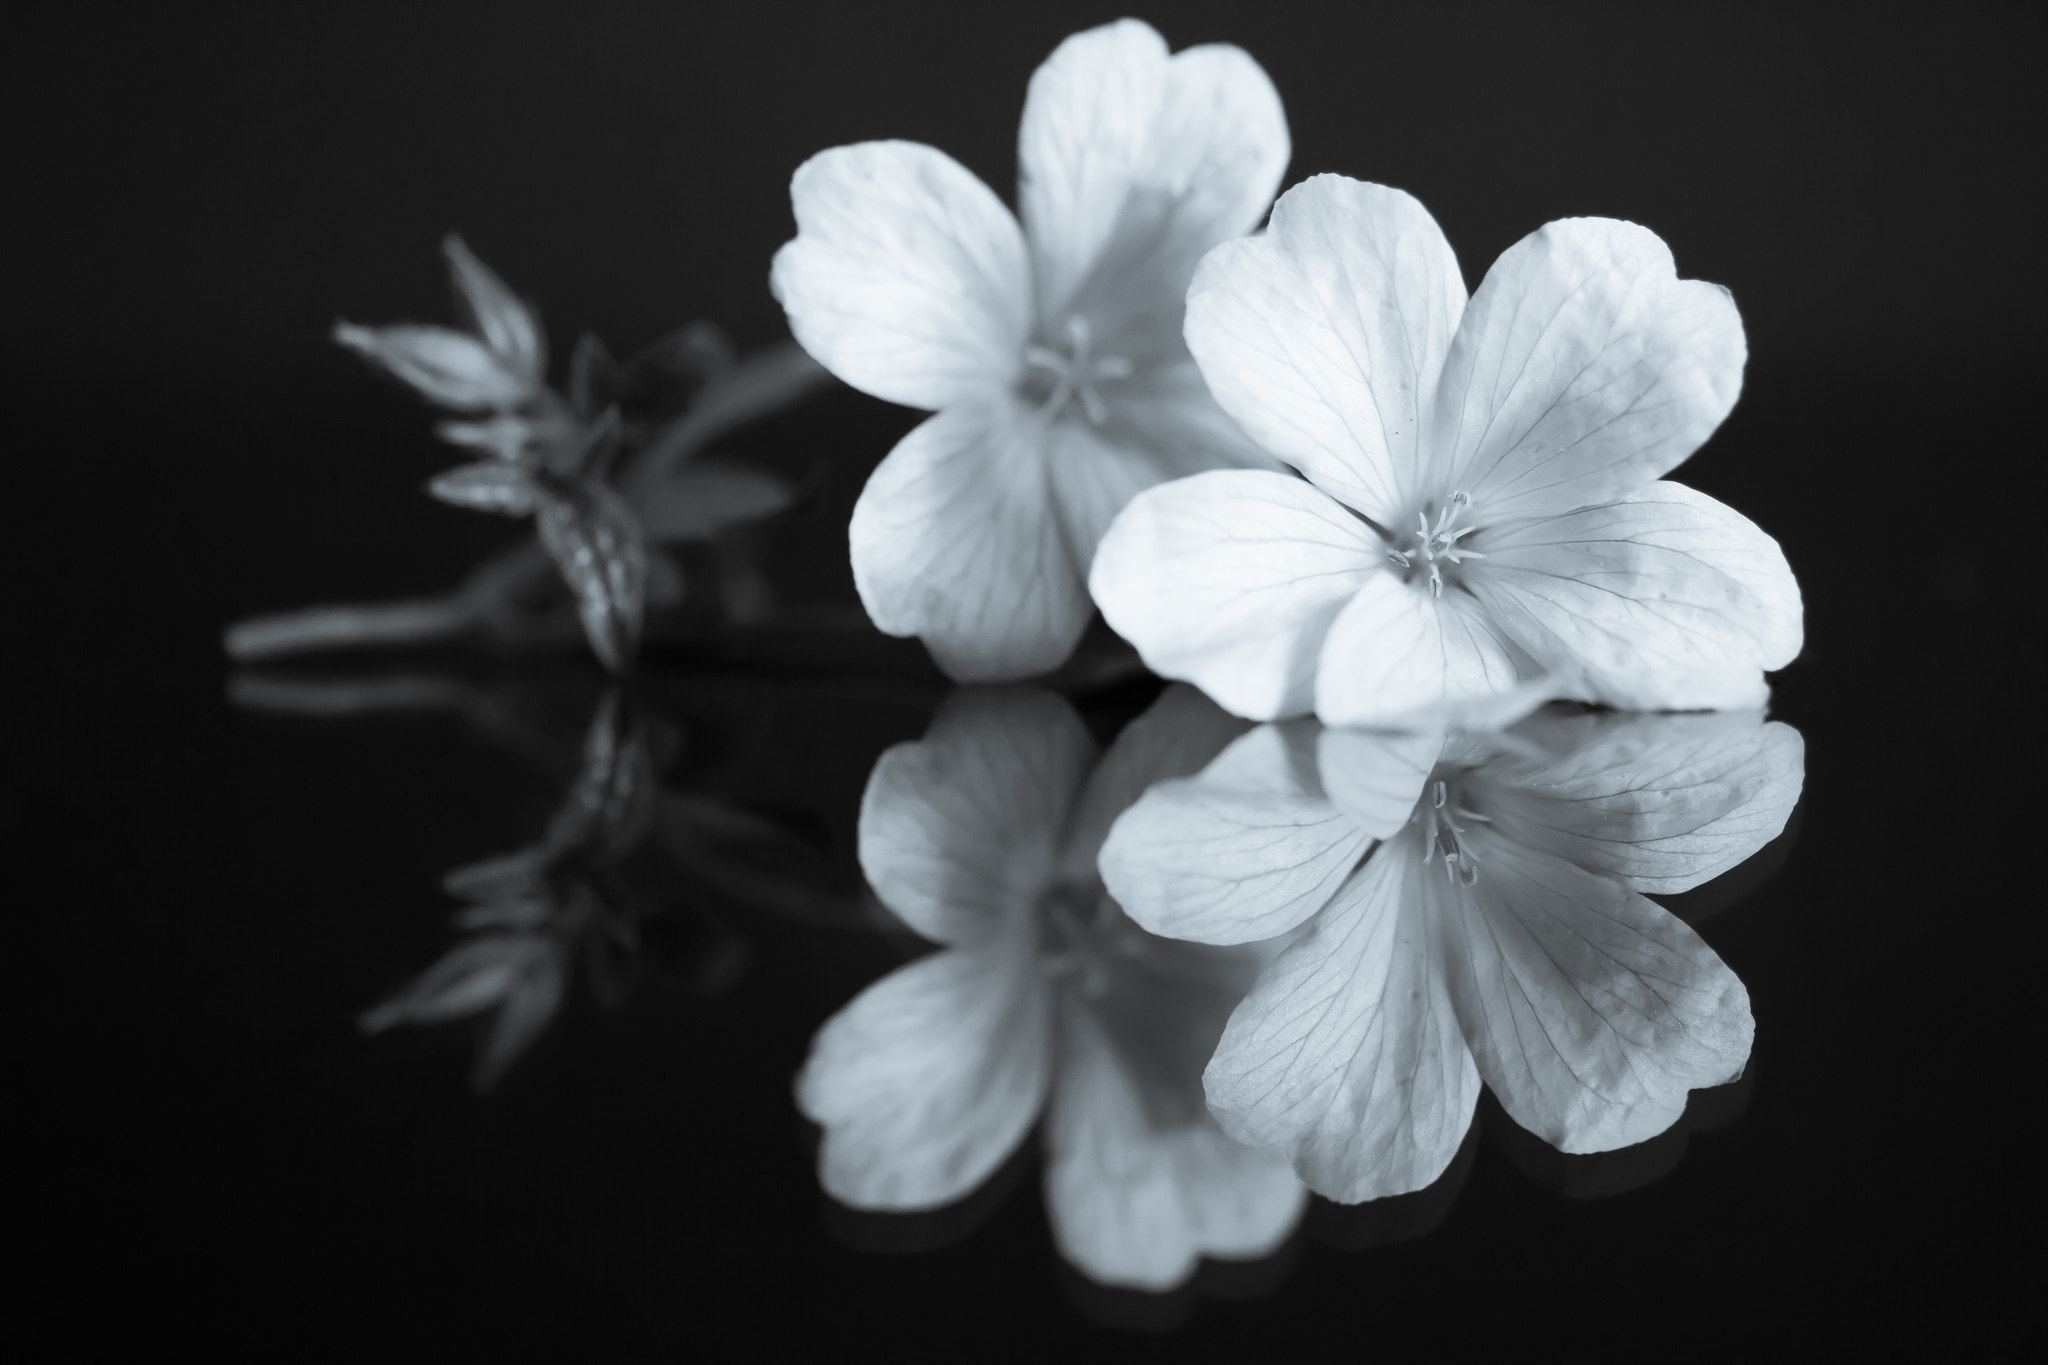 Photograph Black & White Flower Reflections by Kevin Roberts on 500px